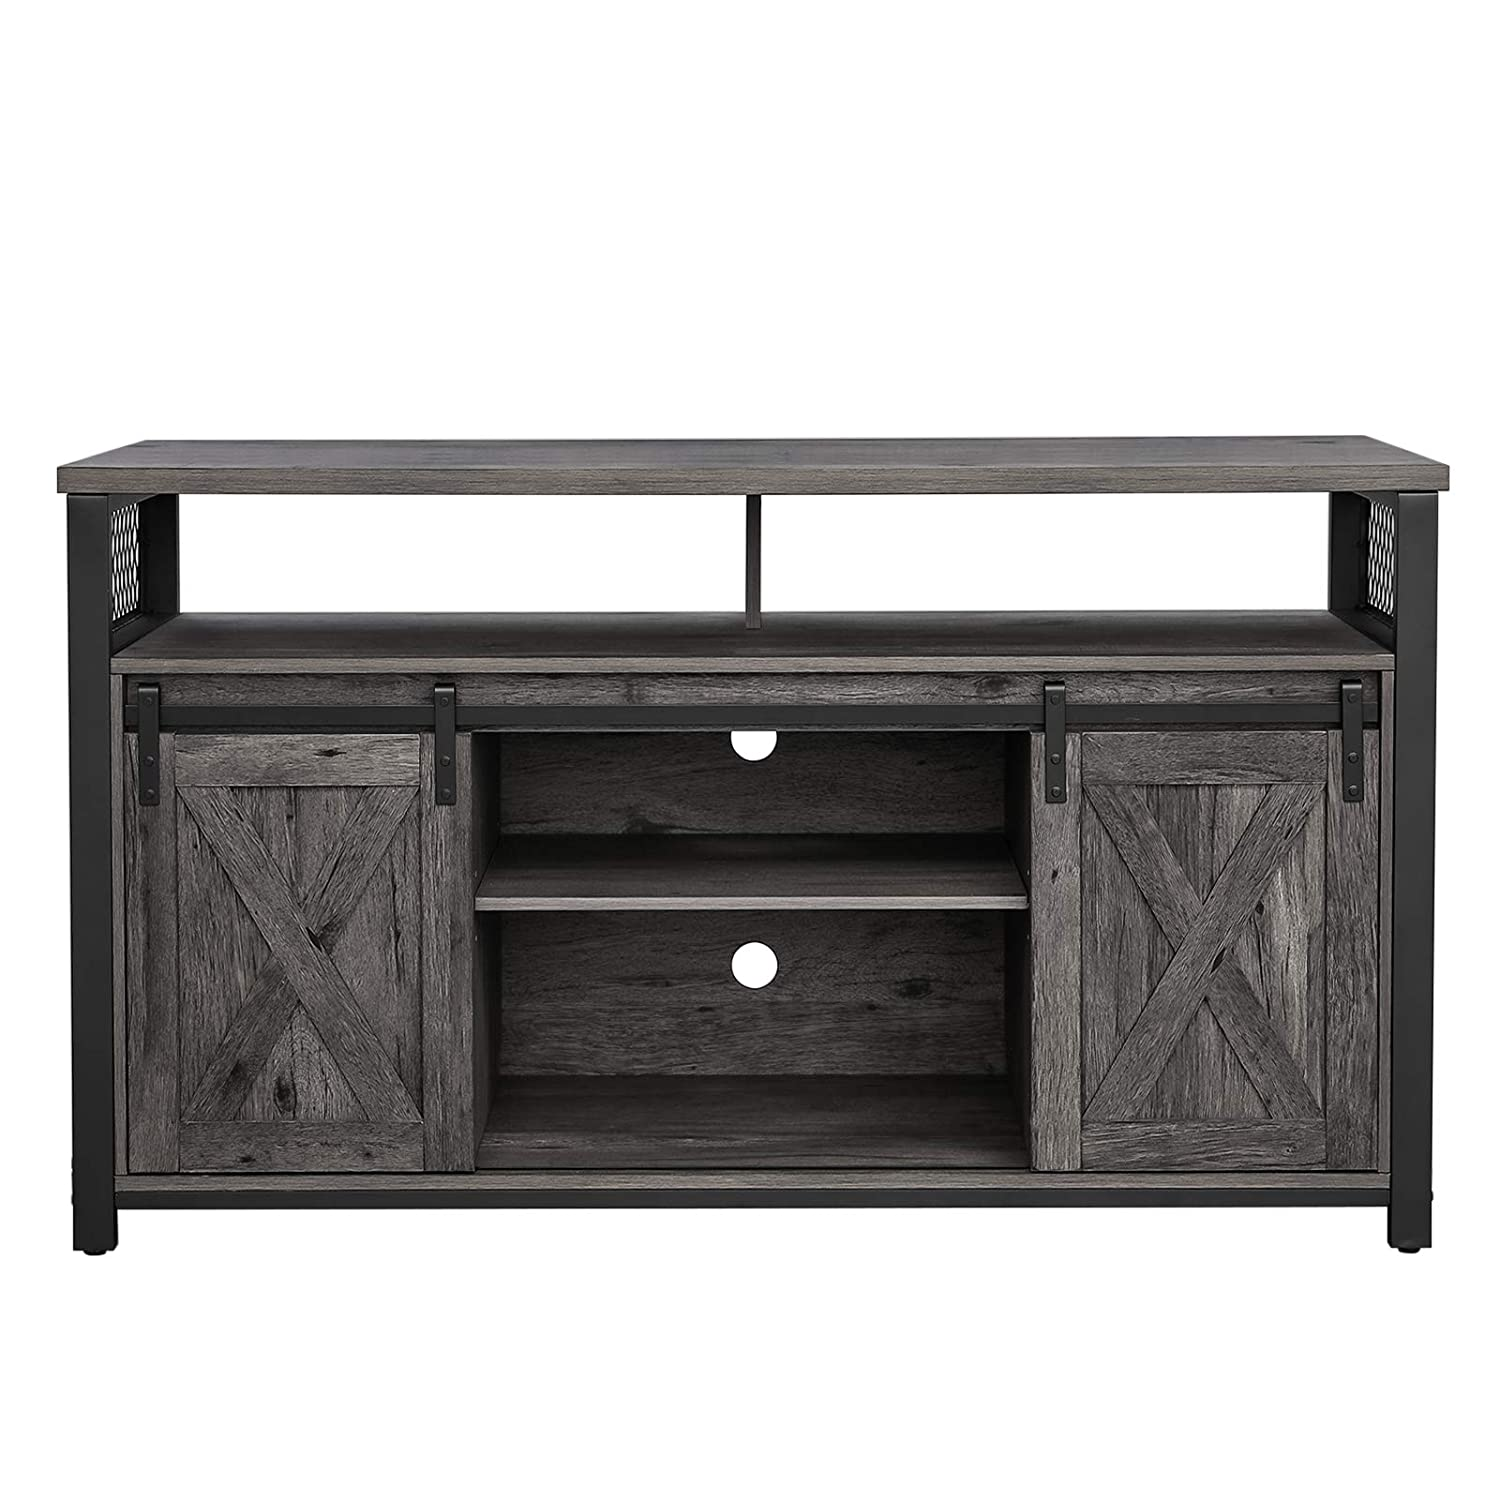 Enjoy fast, free nationwide shipping!  Family owned and operated, HawkinsWoodshop.com is your one stop shop for affordable furniture.  Shop HawkinsWoodshop.com for solid wood & metal modern, traditional, contemporary, industrial, custom, rustic, and farmhouse furniture including our 55 Inch TV Stand Sliding Barn Door Console.